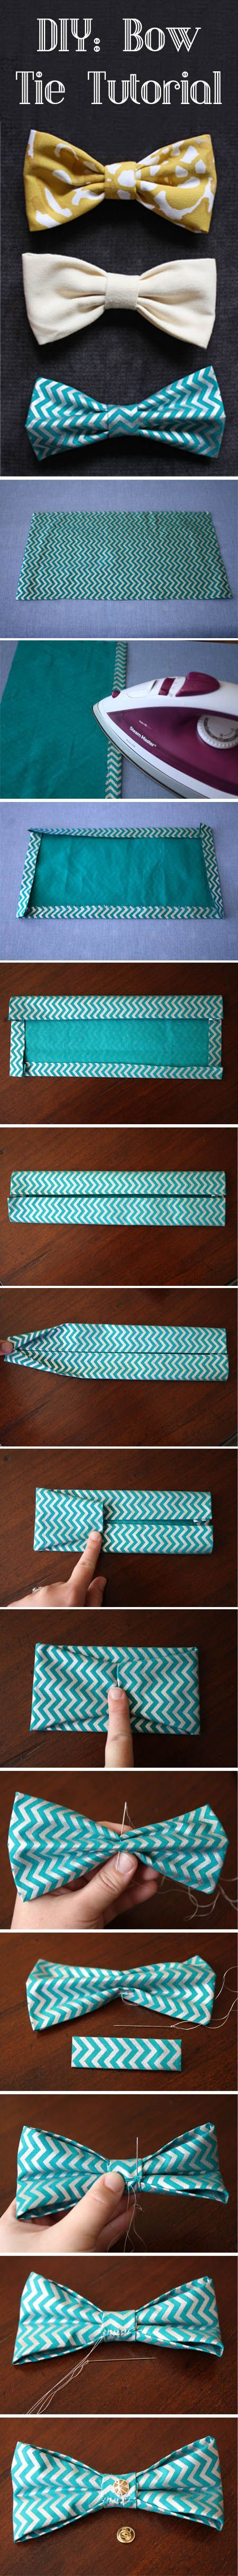 DIY sewing pattern and tutorial on how to make a bowtie. Ohhhh this is happening!! I can't wait to make a bowties!